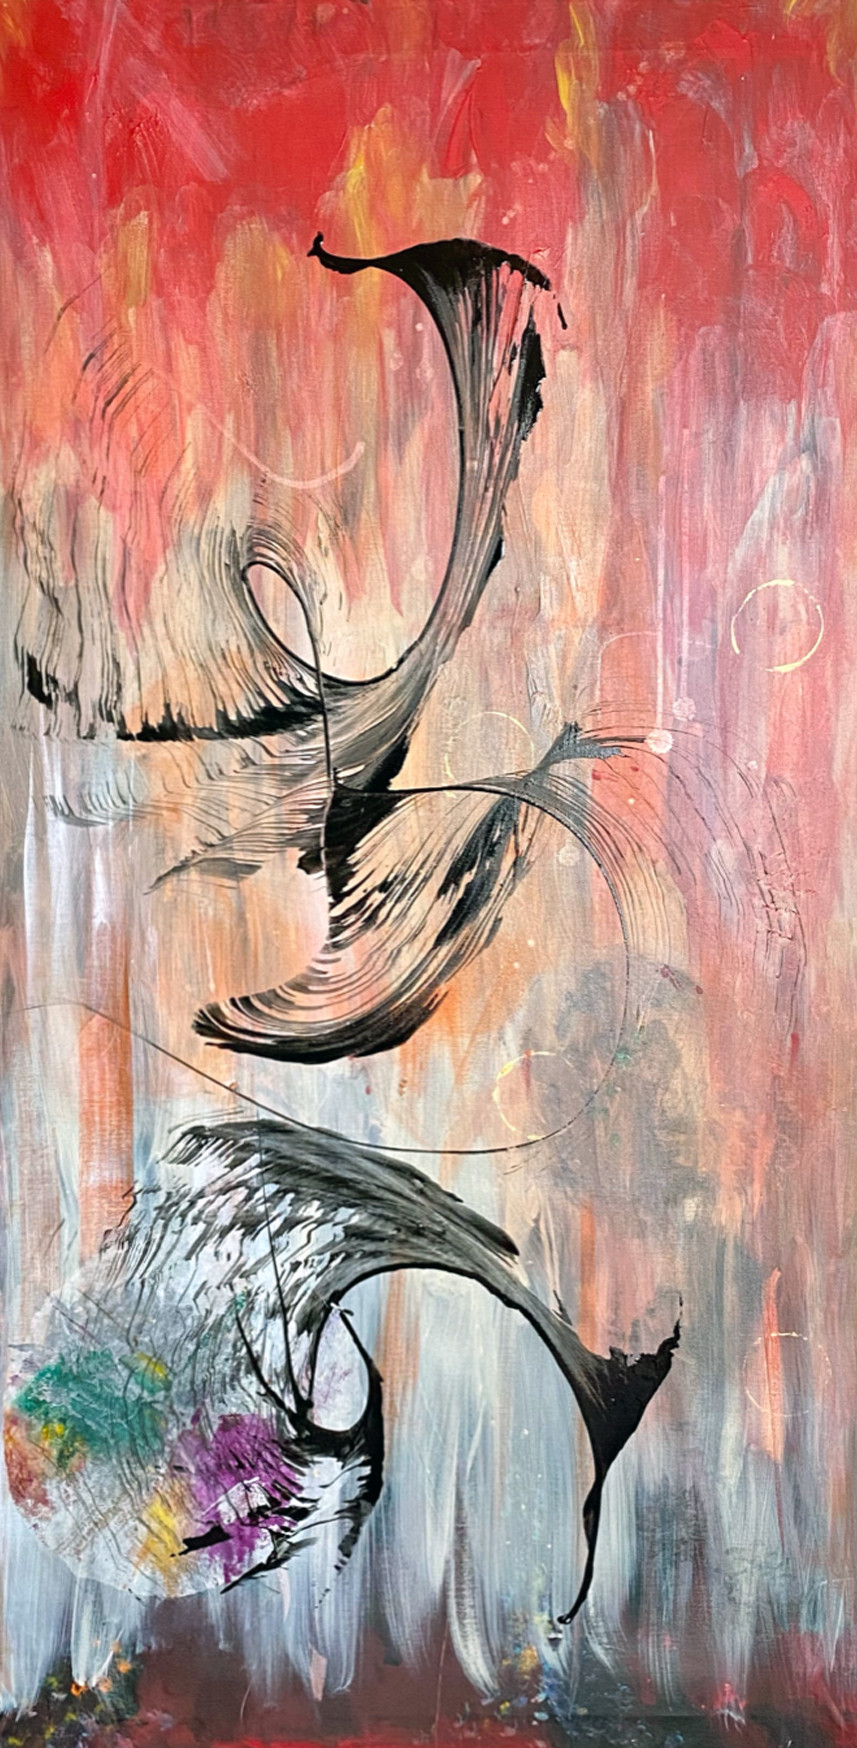 Acrylic, ink and paper on canvas.  Mixed Media Abstract Bird art from the In Flight Series by Rita G. Patel